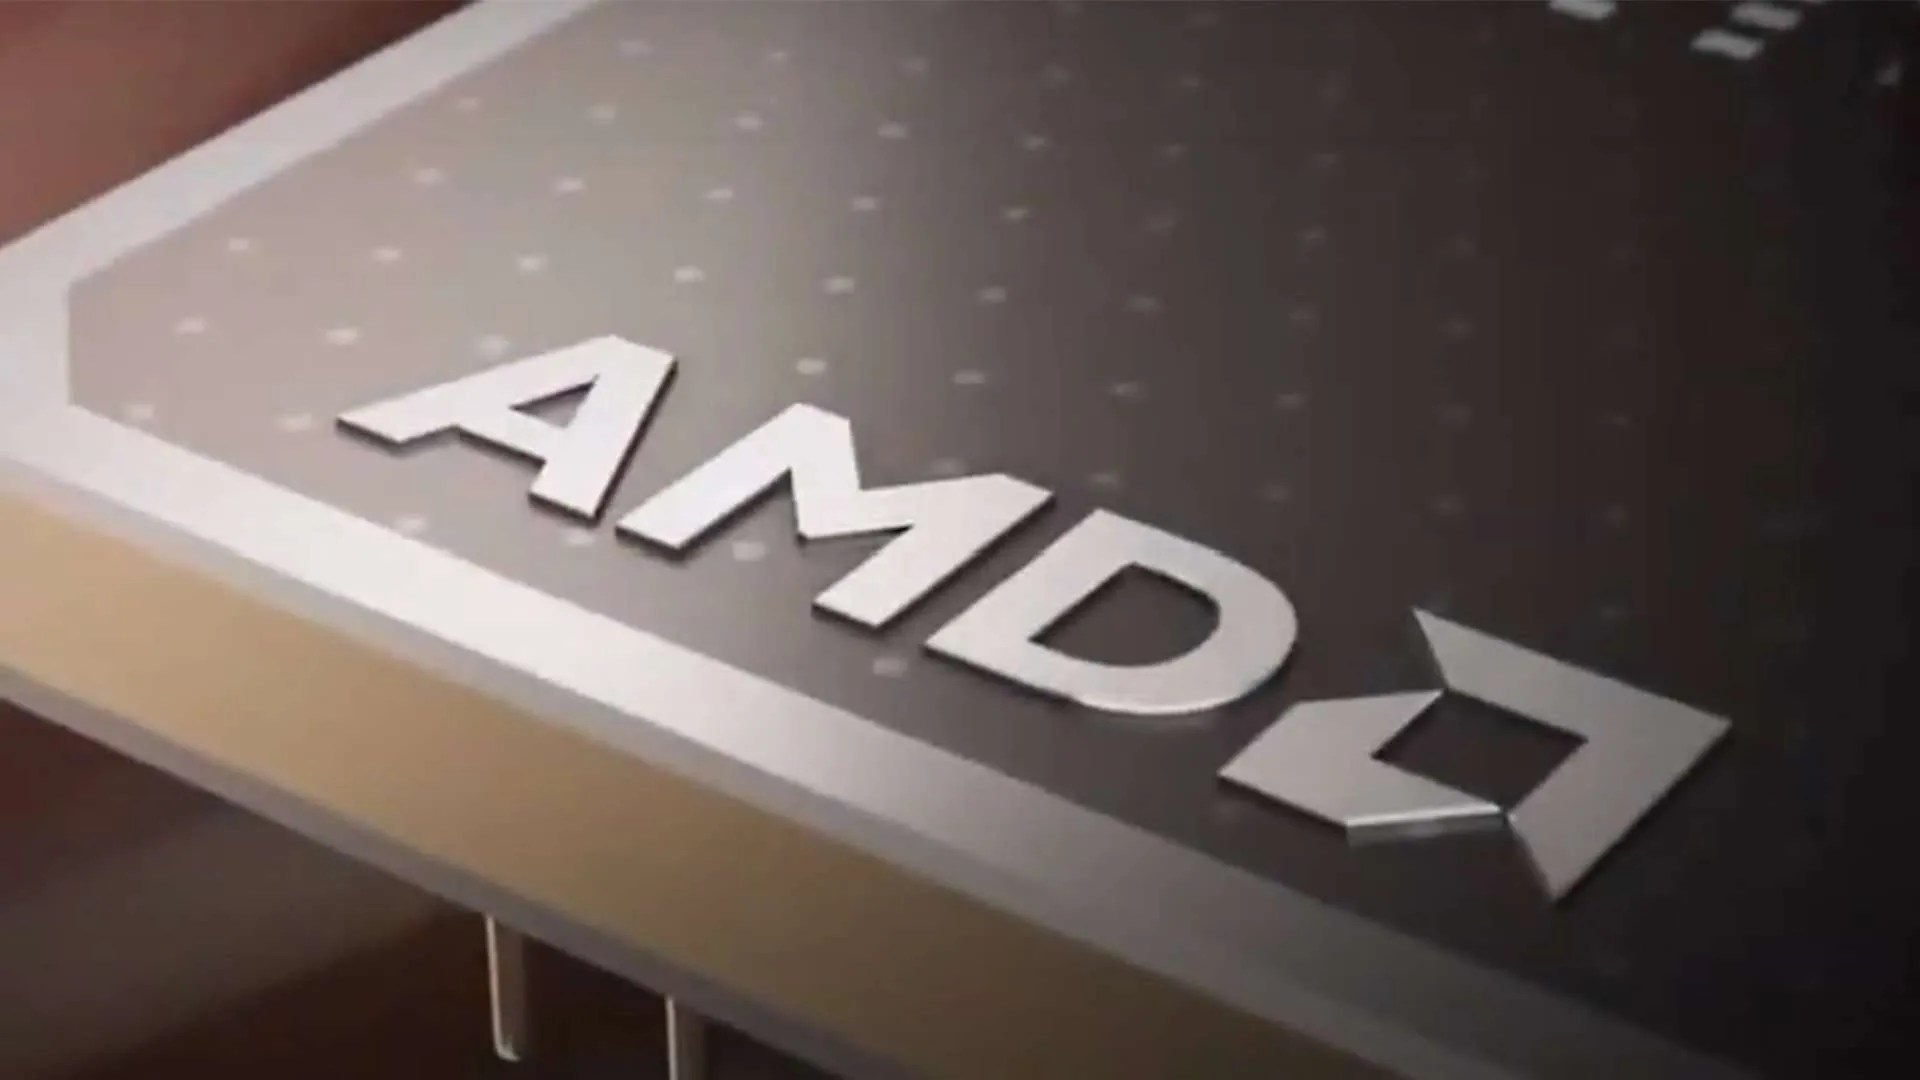 Amd Announces Zen 3 And Rdna 2 Launch Events Www Bg4ghub Com